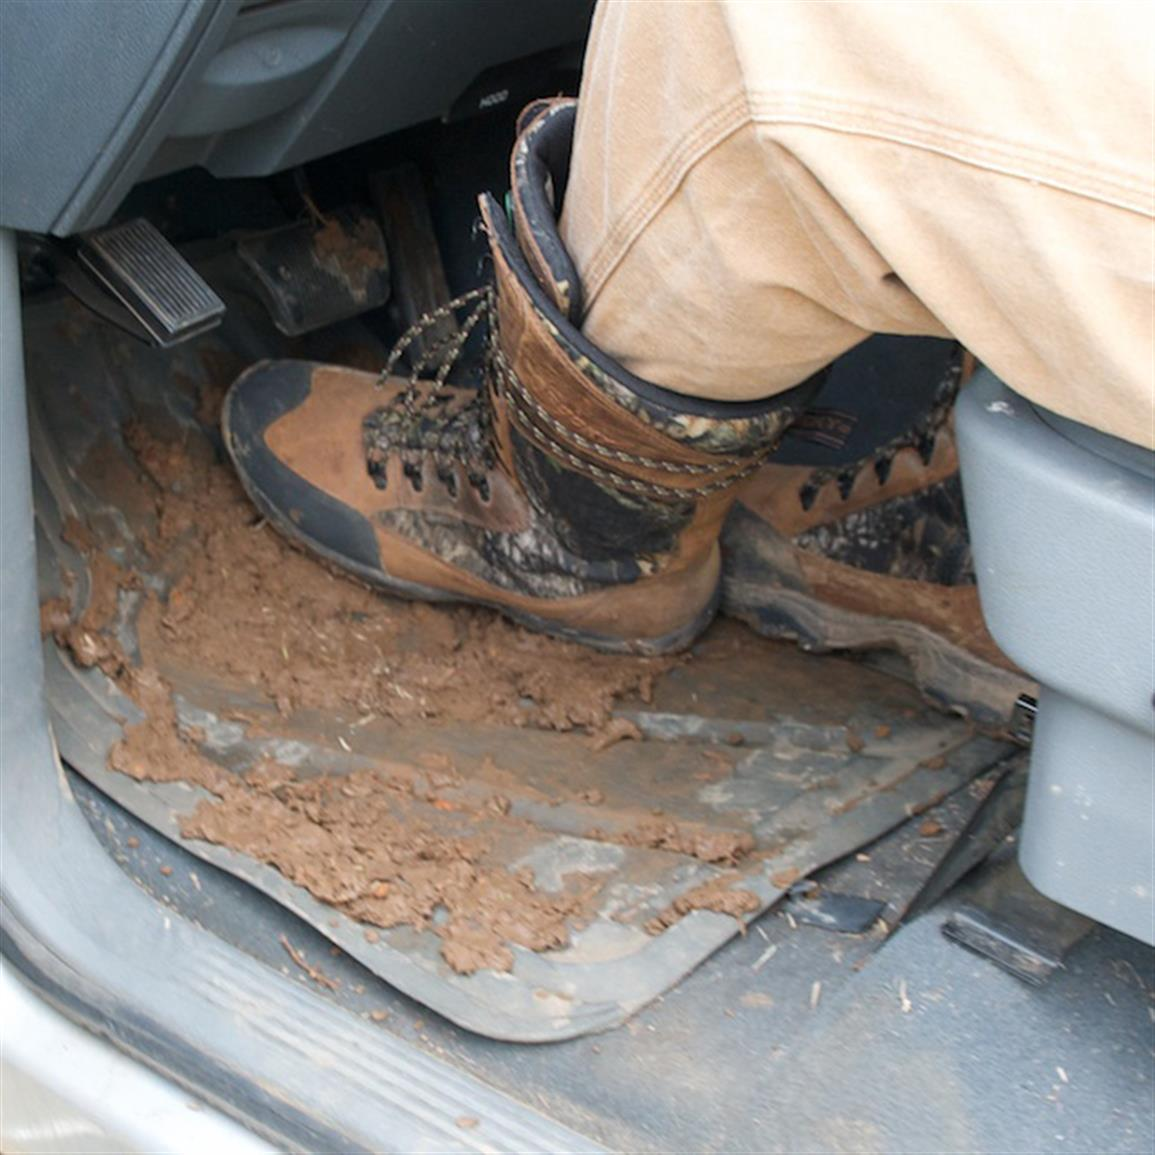 Keep the interior of your vehicle free of tracked-in dirt, mud, snow and debris